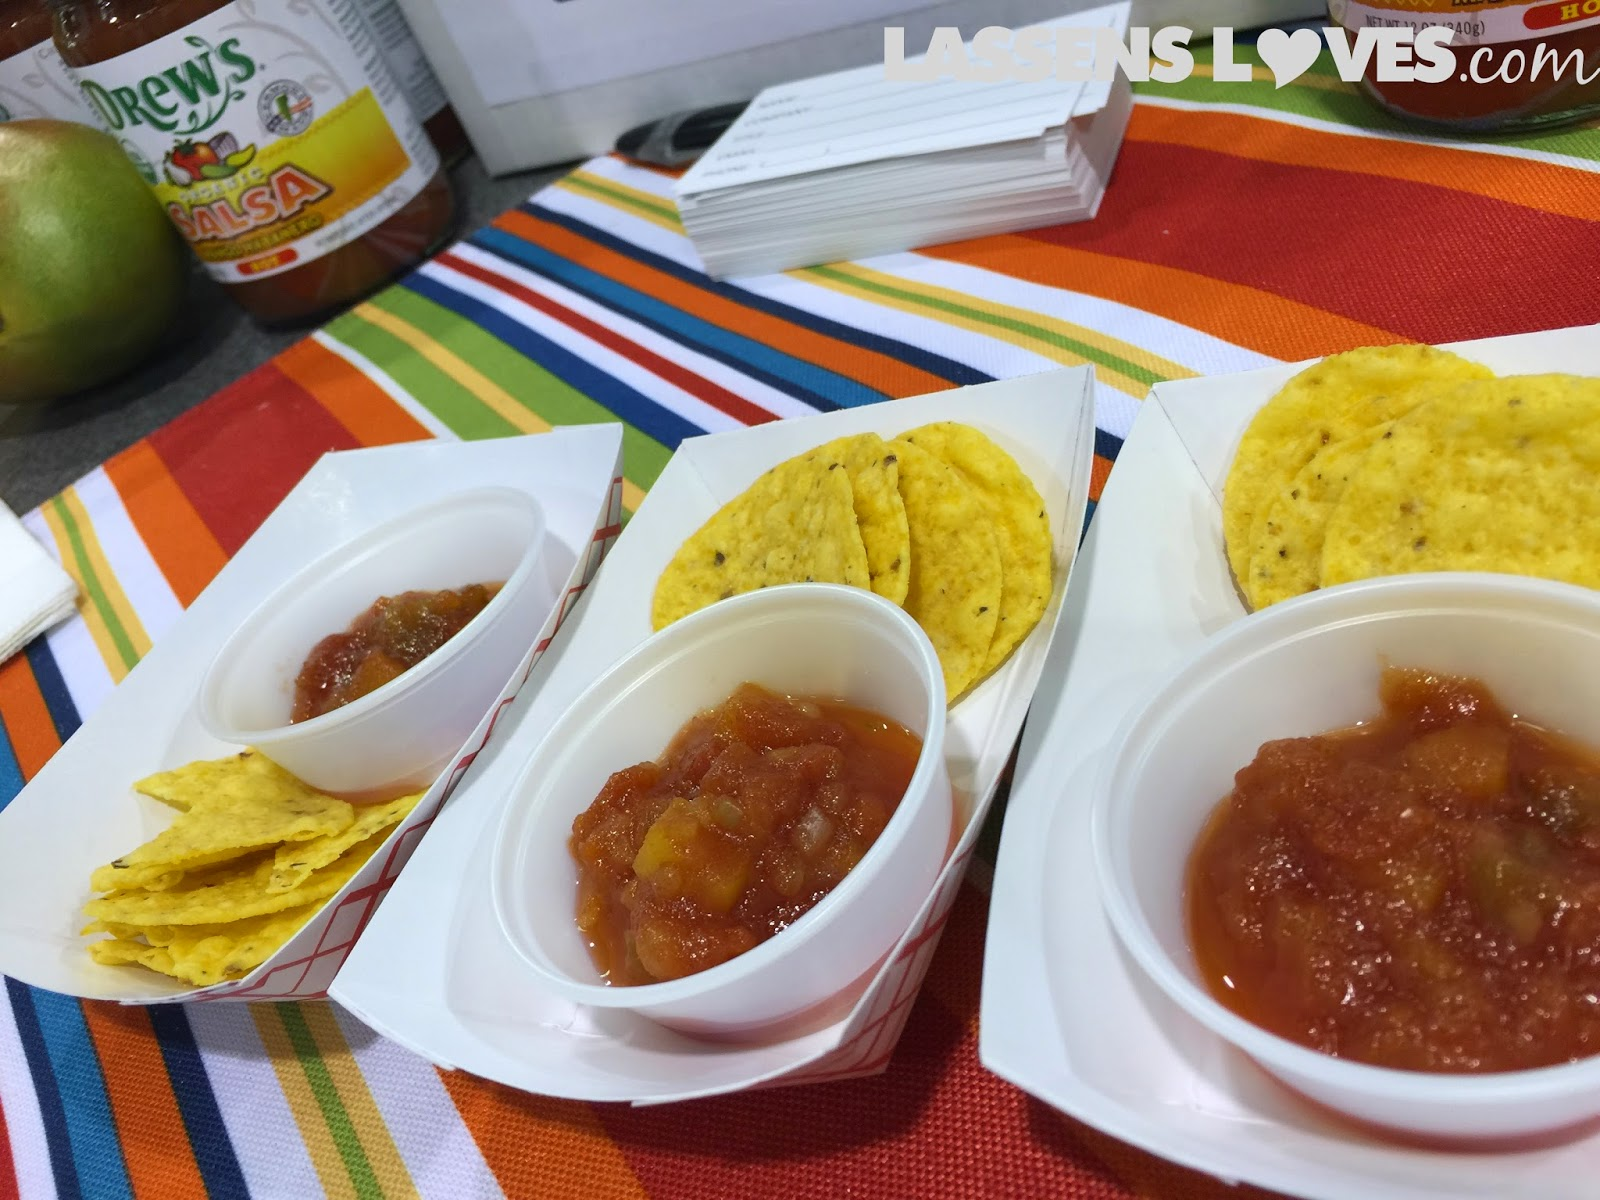 Expo+West+2015, Natural+Foods+Show, New+Natural+Products, drews+salsa